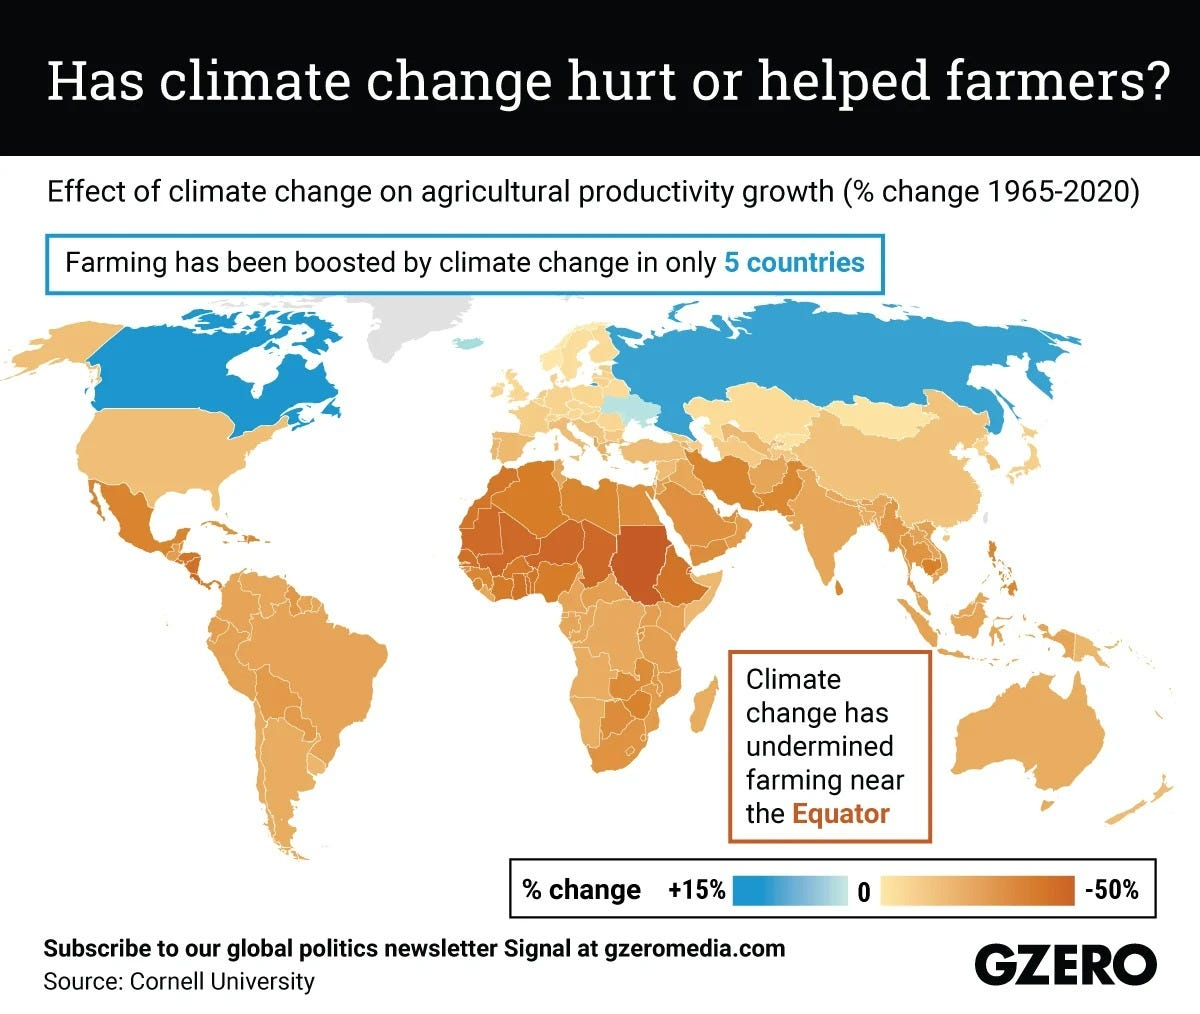 The Graphic Truth: Has climate change hurt or helped farmers?